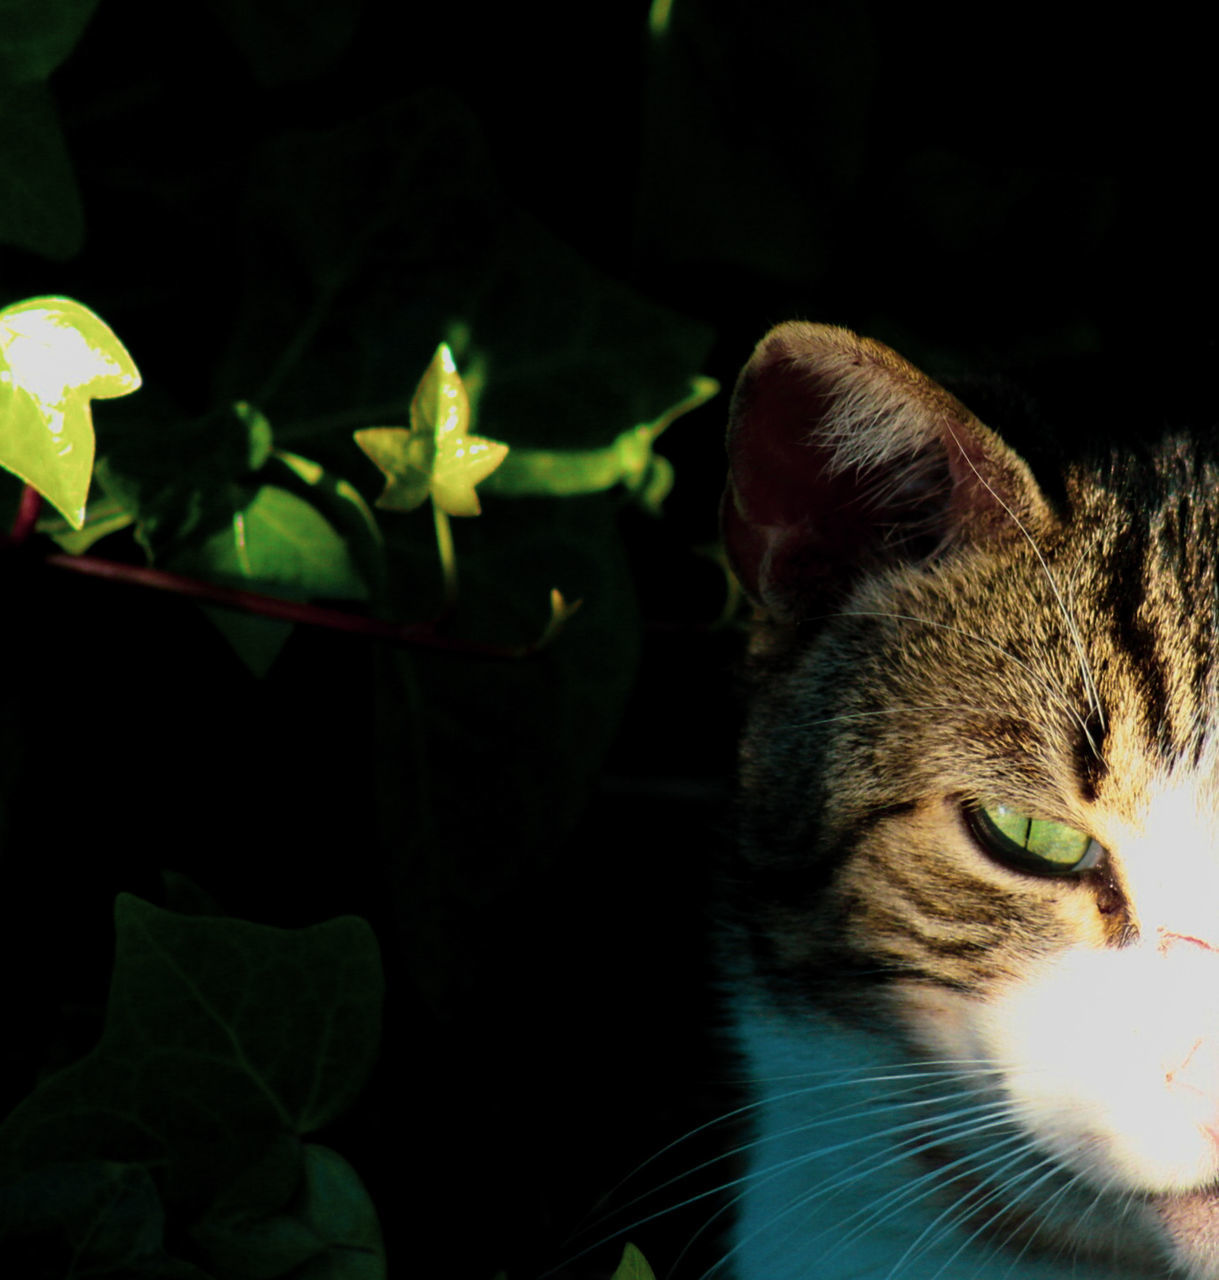 domestic cat, domestic, pets, domestic animals, cat, one animal, animal, animal themes, feline, mammal, vertebrate, close-up, no people, leaf, plant part, indoors, animal body part, whisker, looking, nature, animal head, animal eye